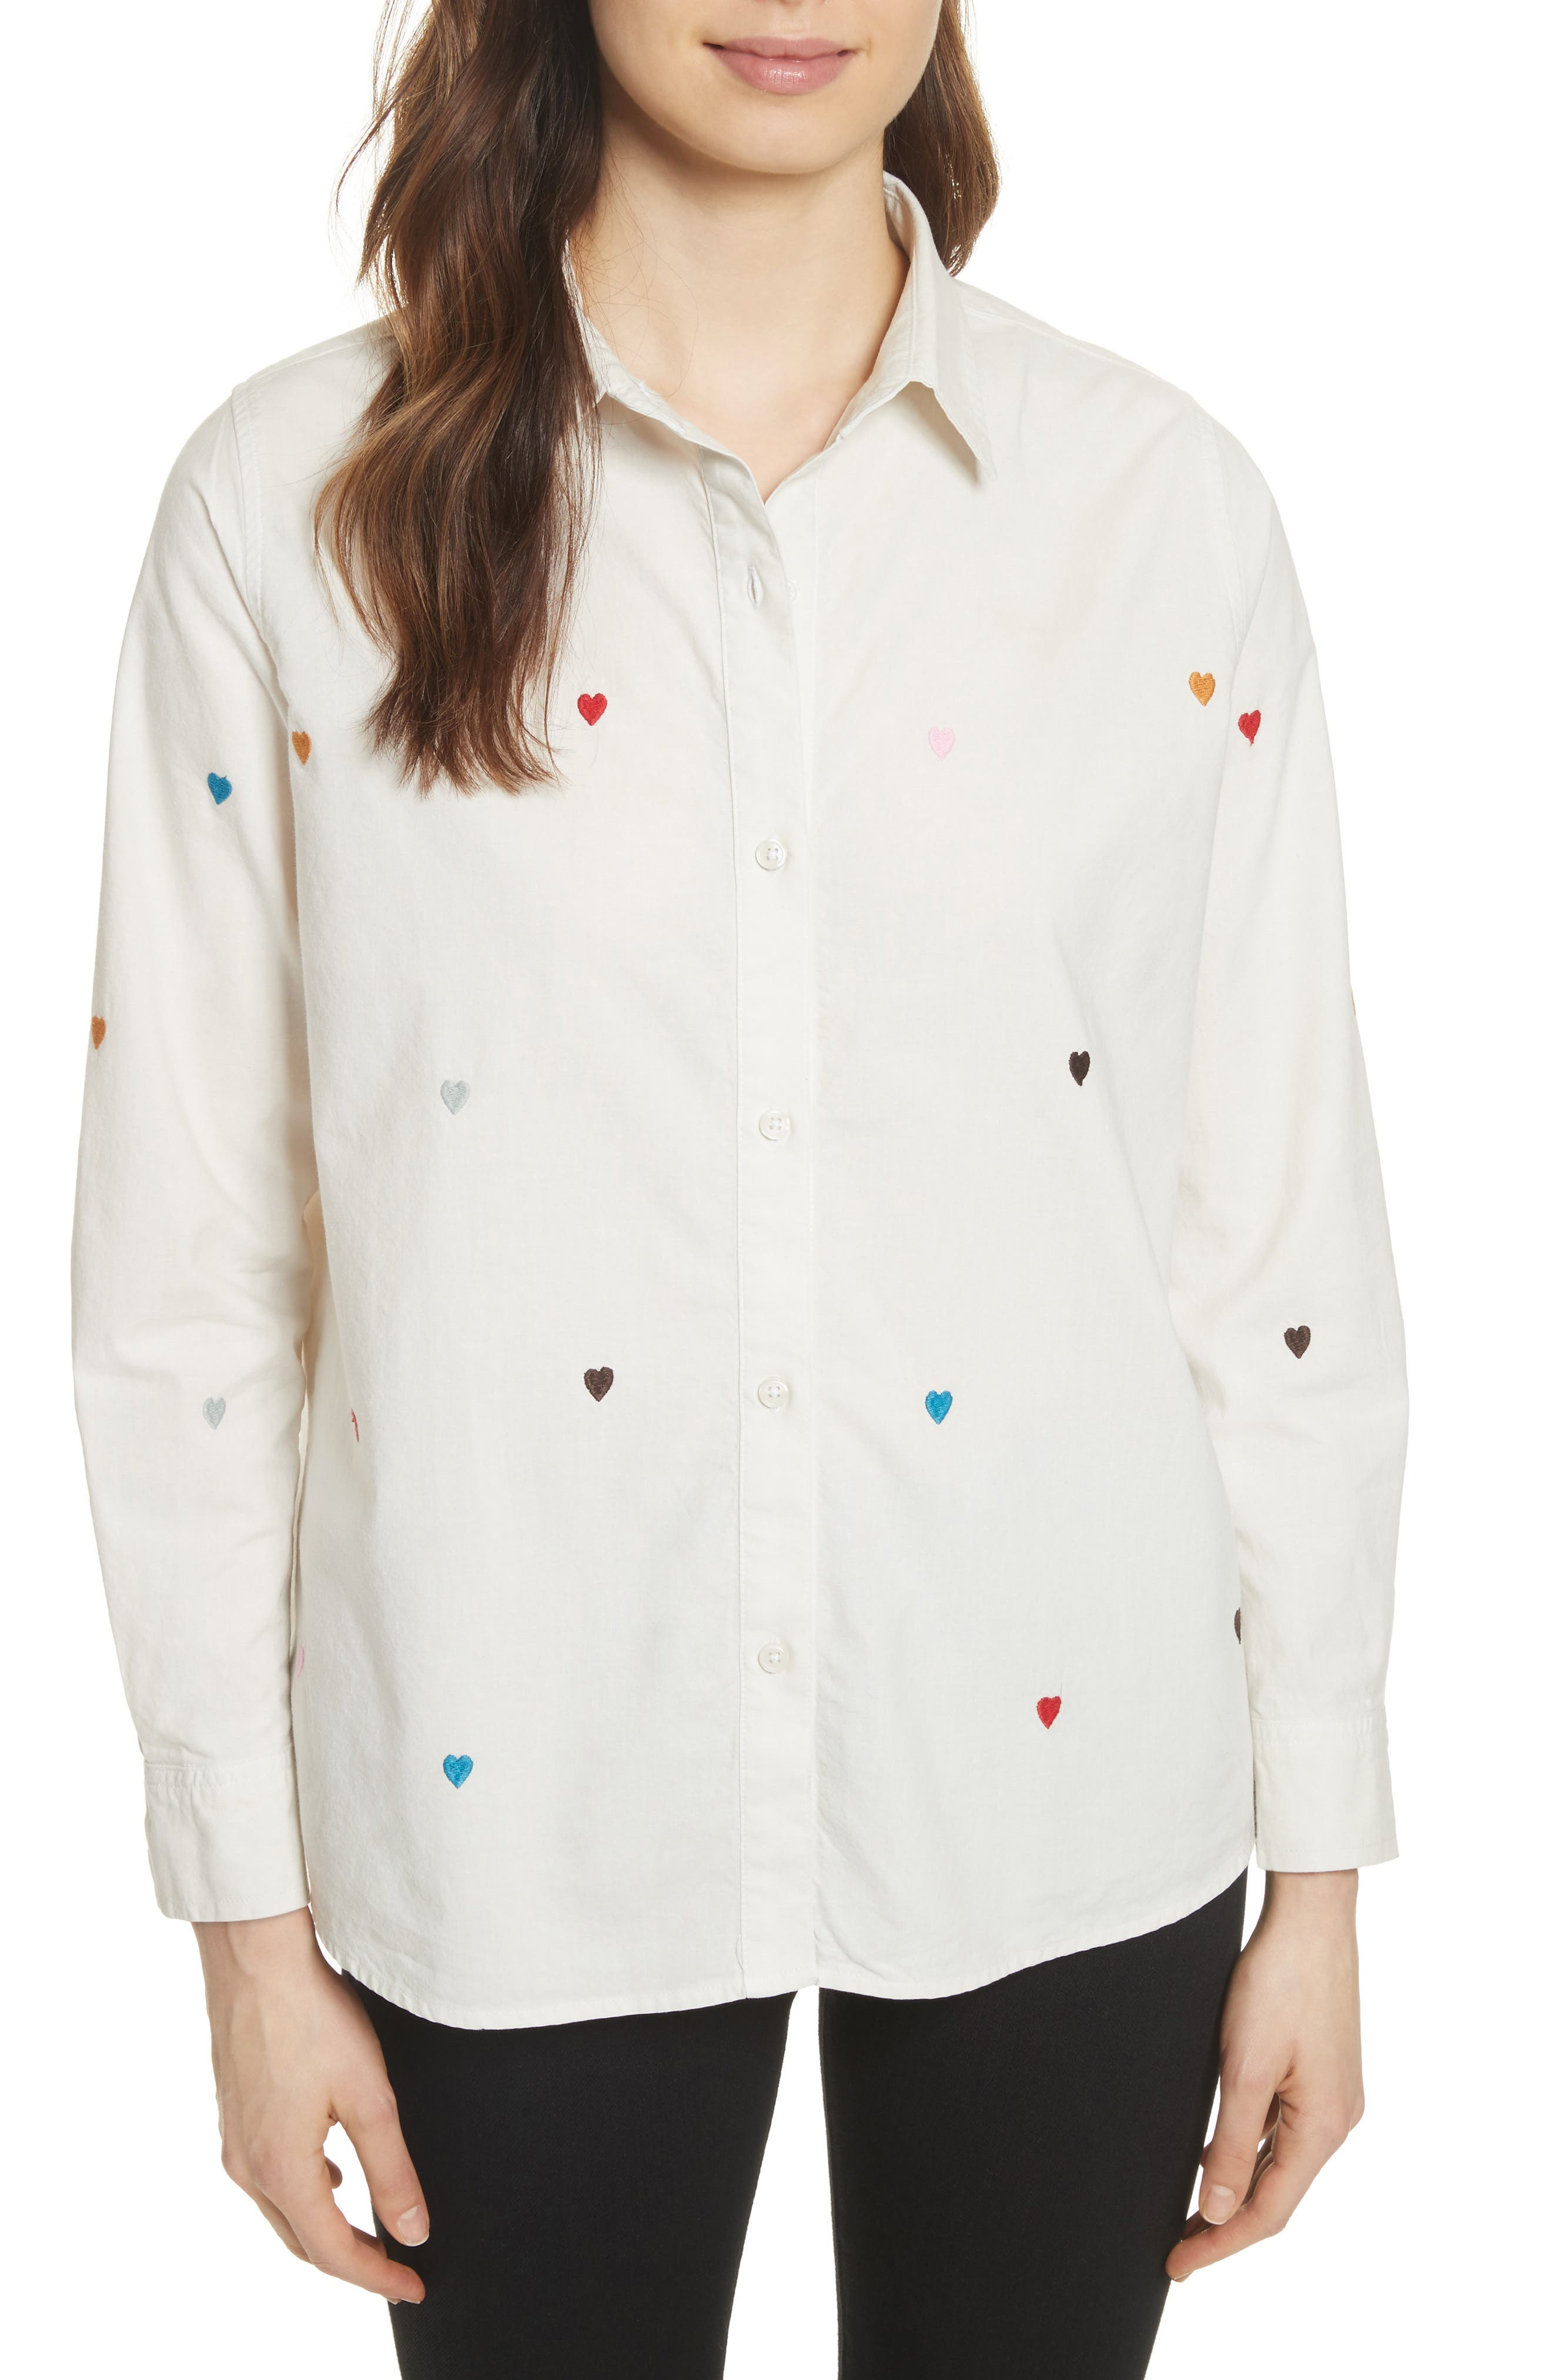 THE GREAT. The Campus Heart Embroidered Shirt